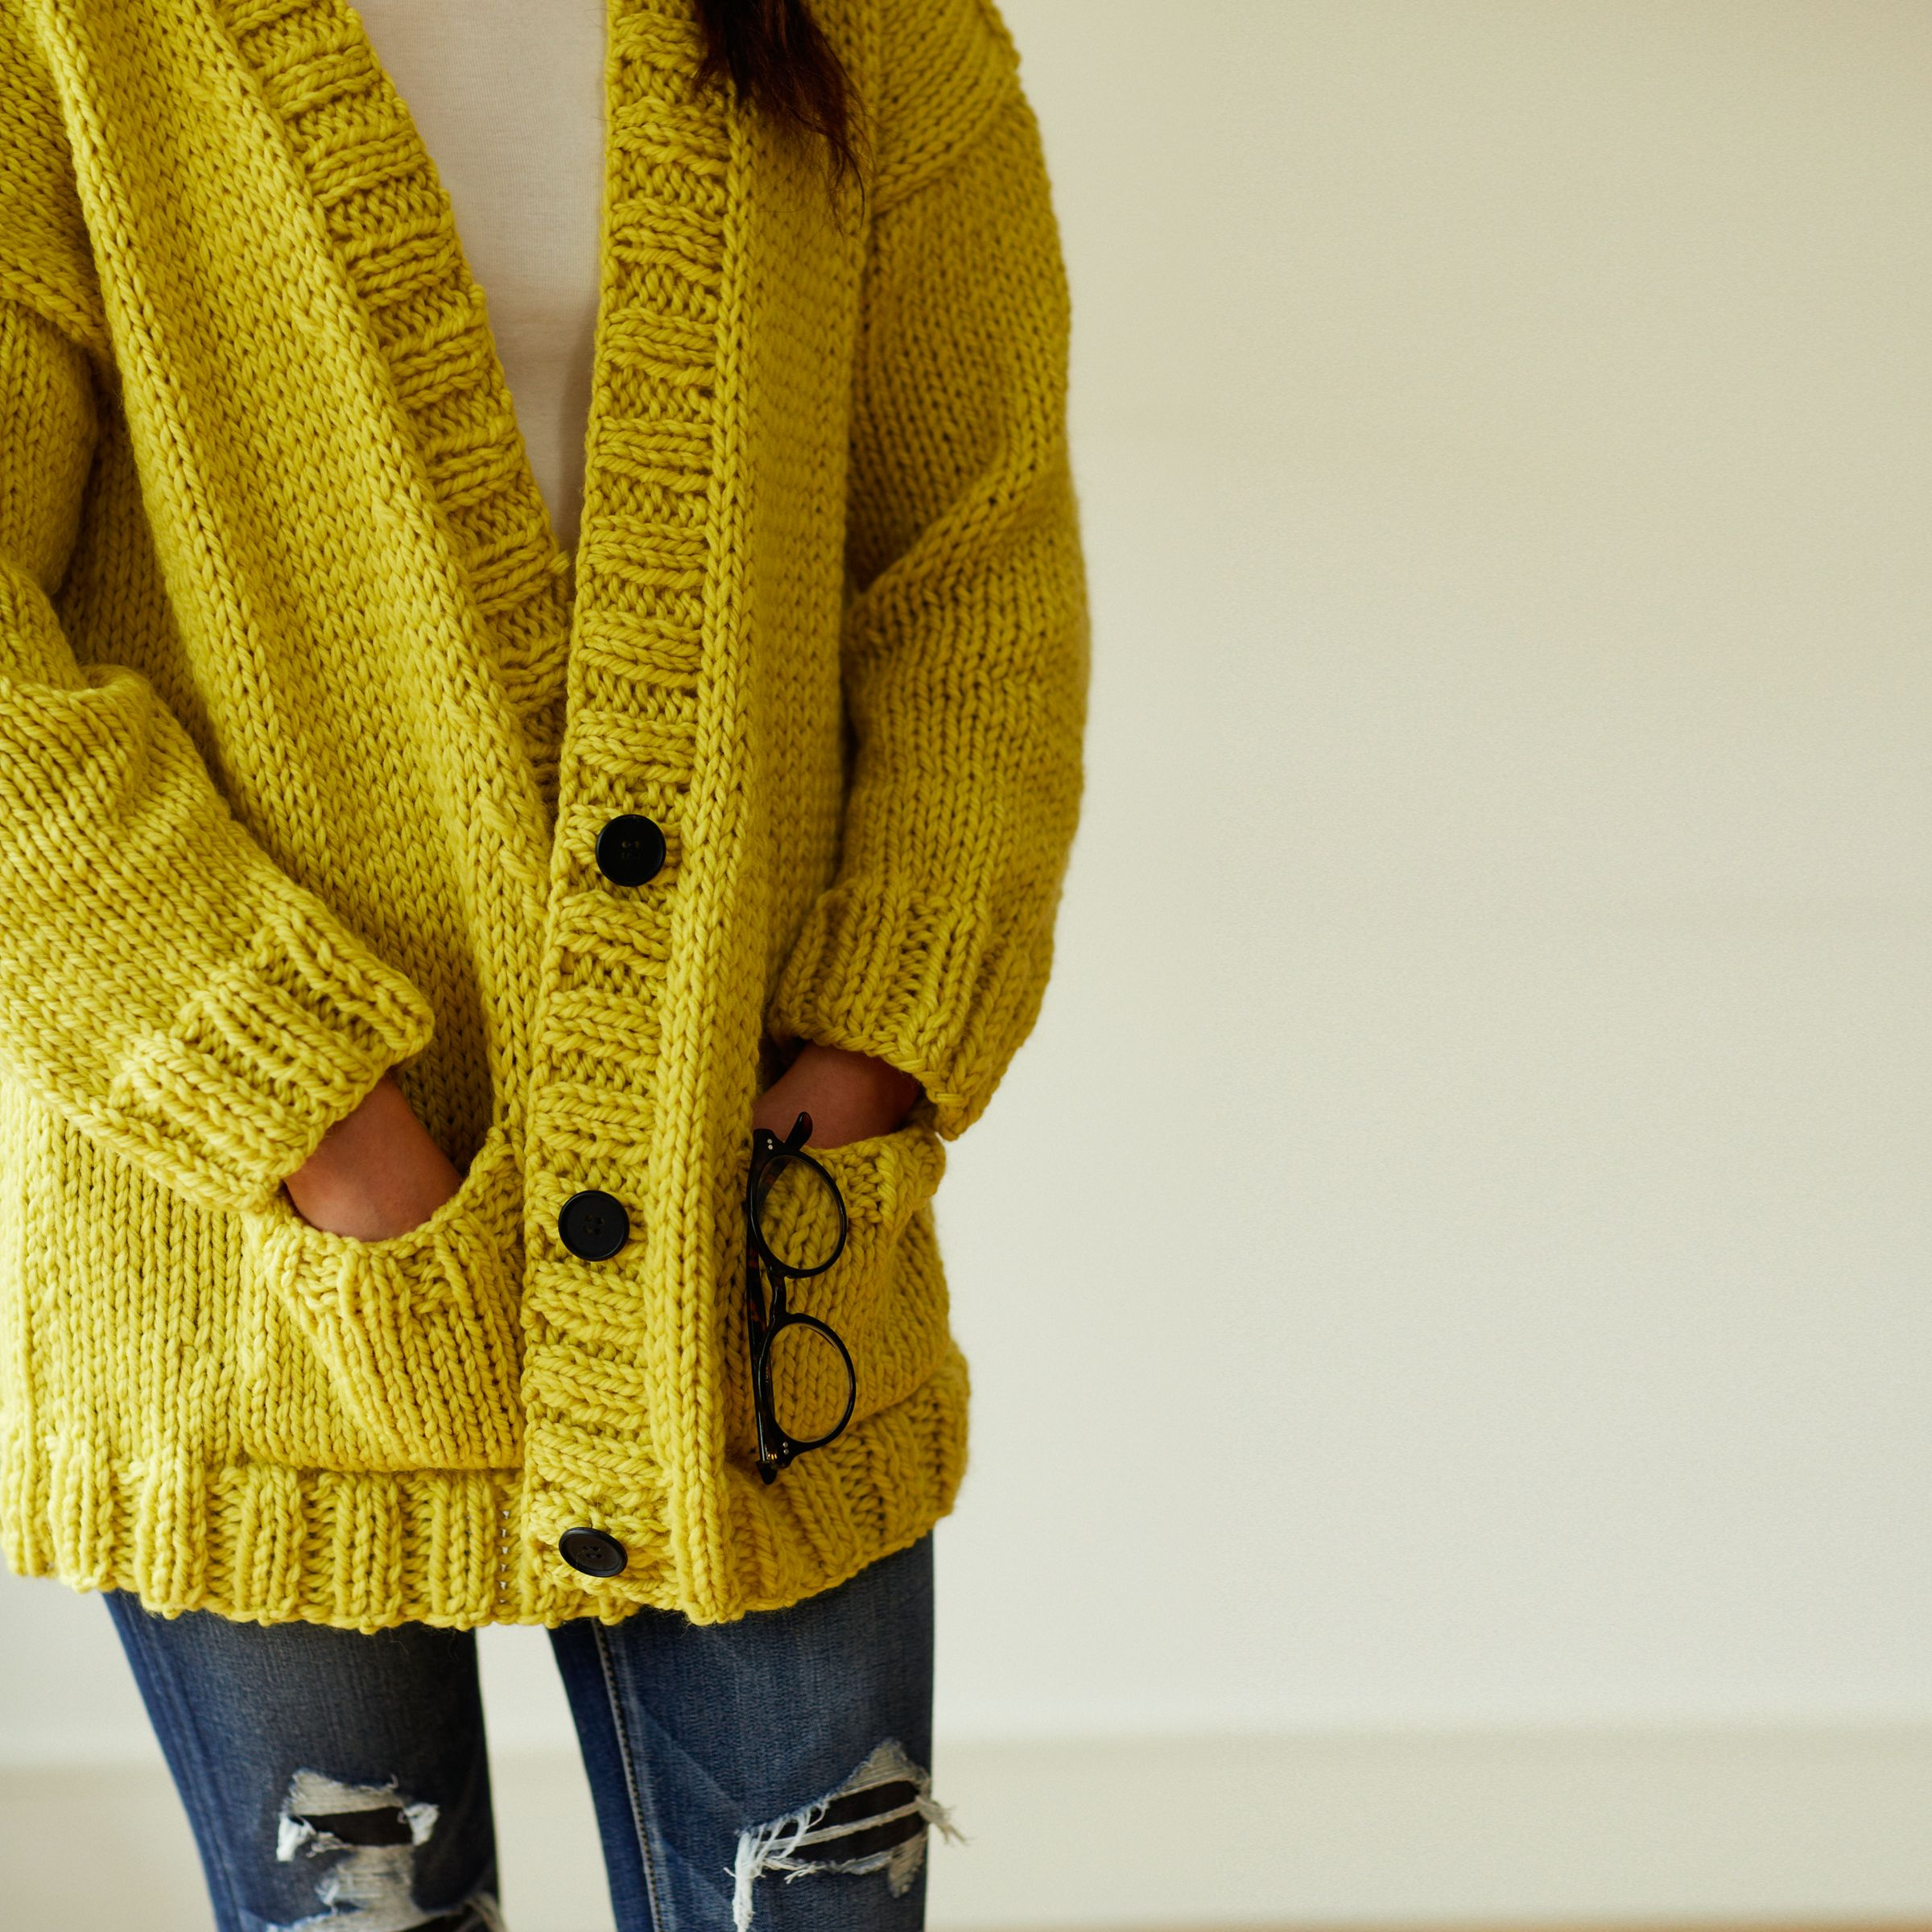 Knitting Pattern John Lewis : Buy Erika Knight for John Lewis Womens Slouchy Cardigan Knitting Pattern...